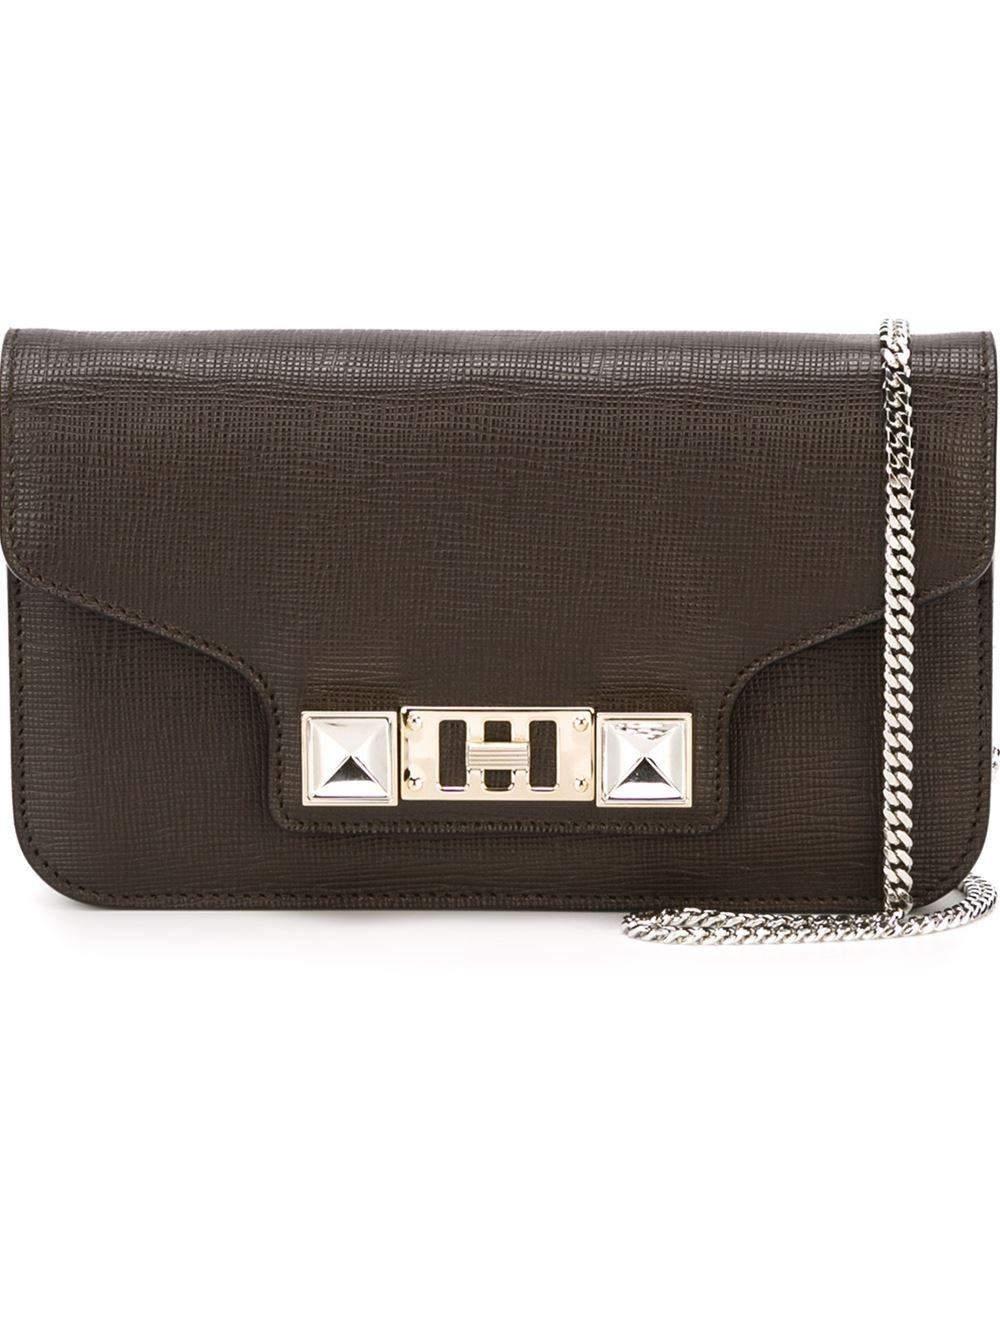 PROENZA SCHOULER  'PS11' crossbody bag On Sale @ Farfetch